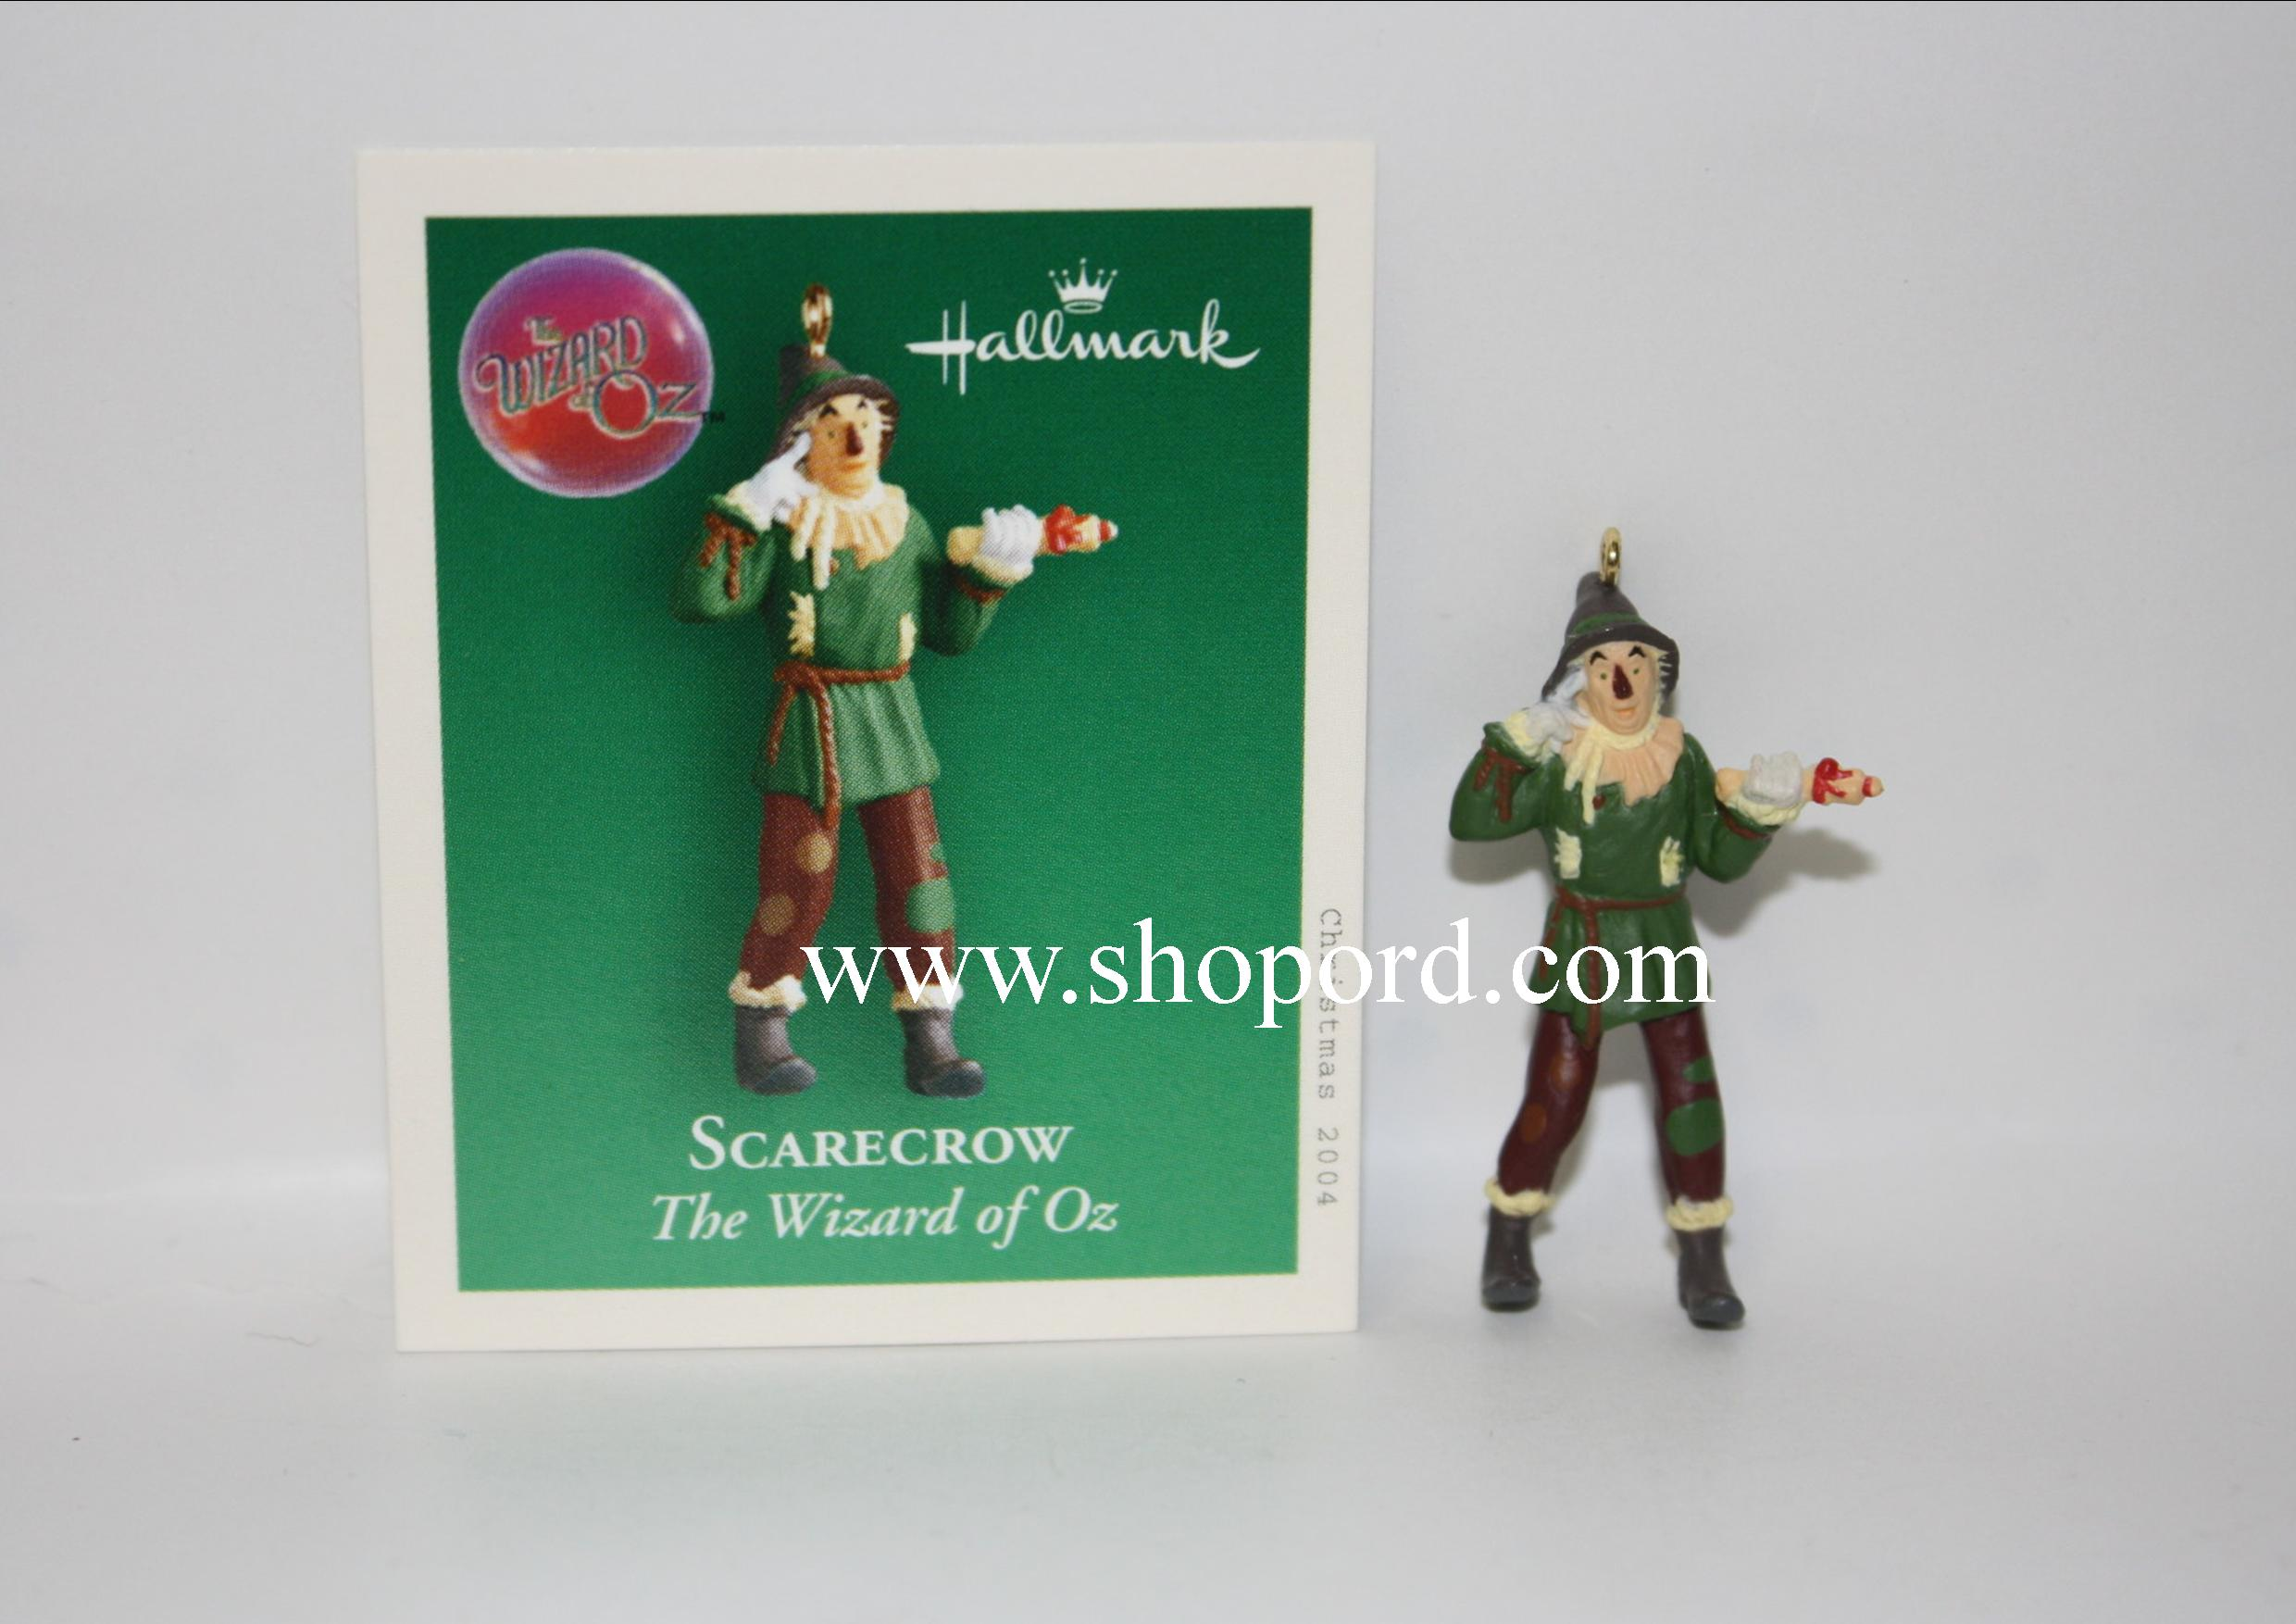 Hallmark 2004 Scarecrow The Wizard of Oz Miniature Ornament QXM5091